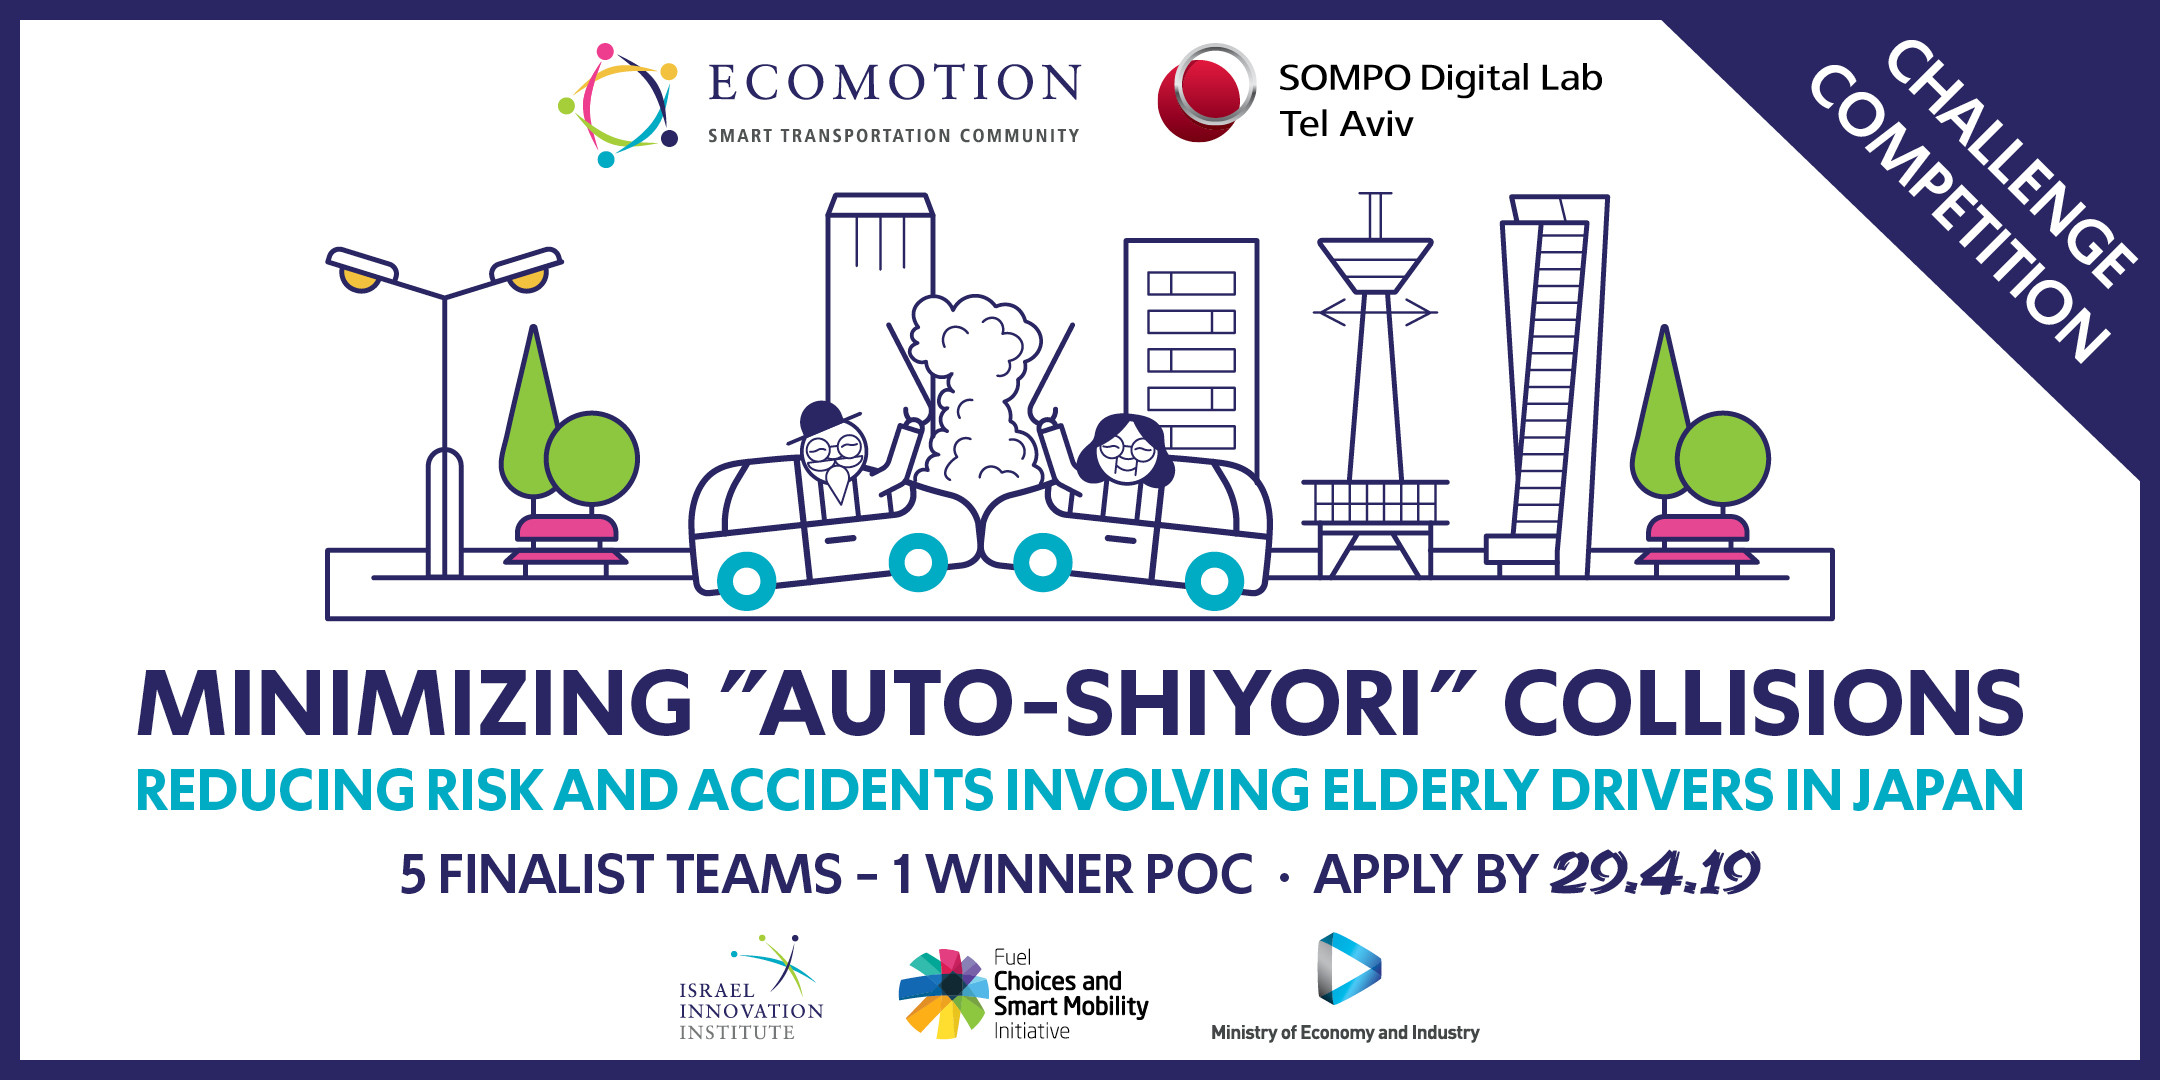 Sompo Digital Lab Tel Aviv Challenge Competition | EcoMotion